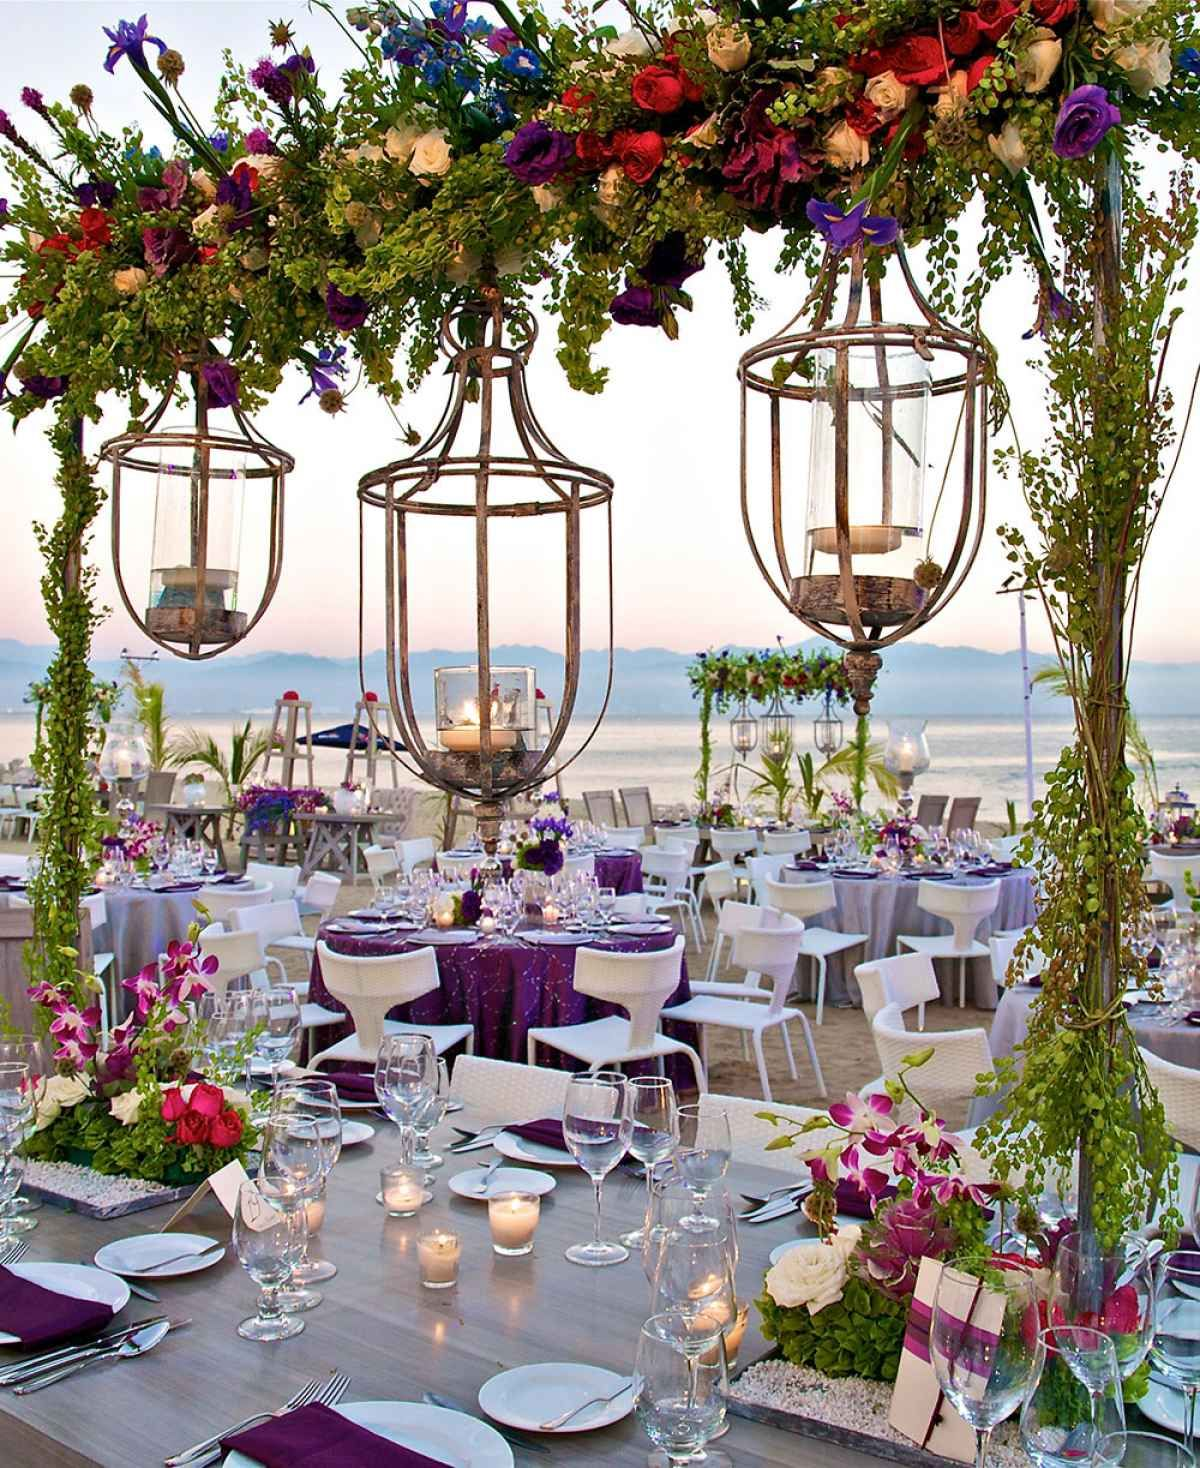 Best Places To Get Married In Mexico Beach Club Wedding Venues